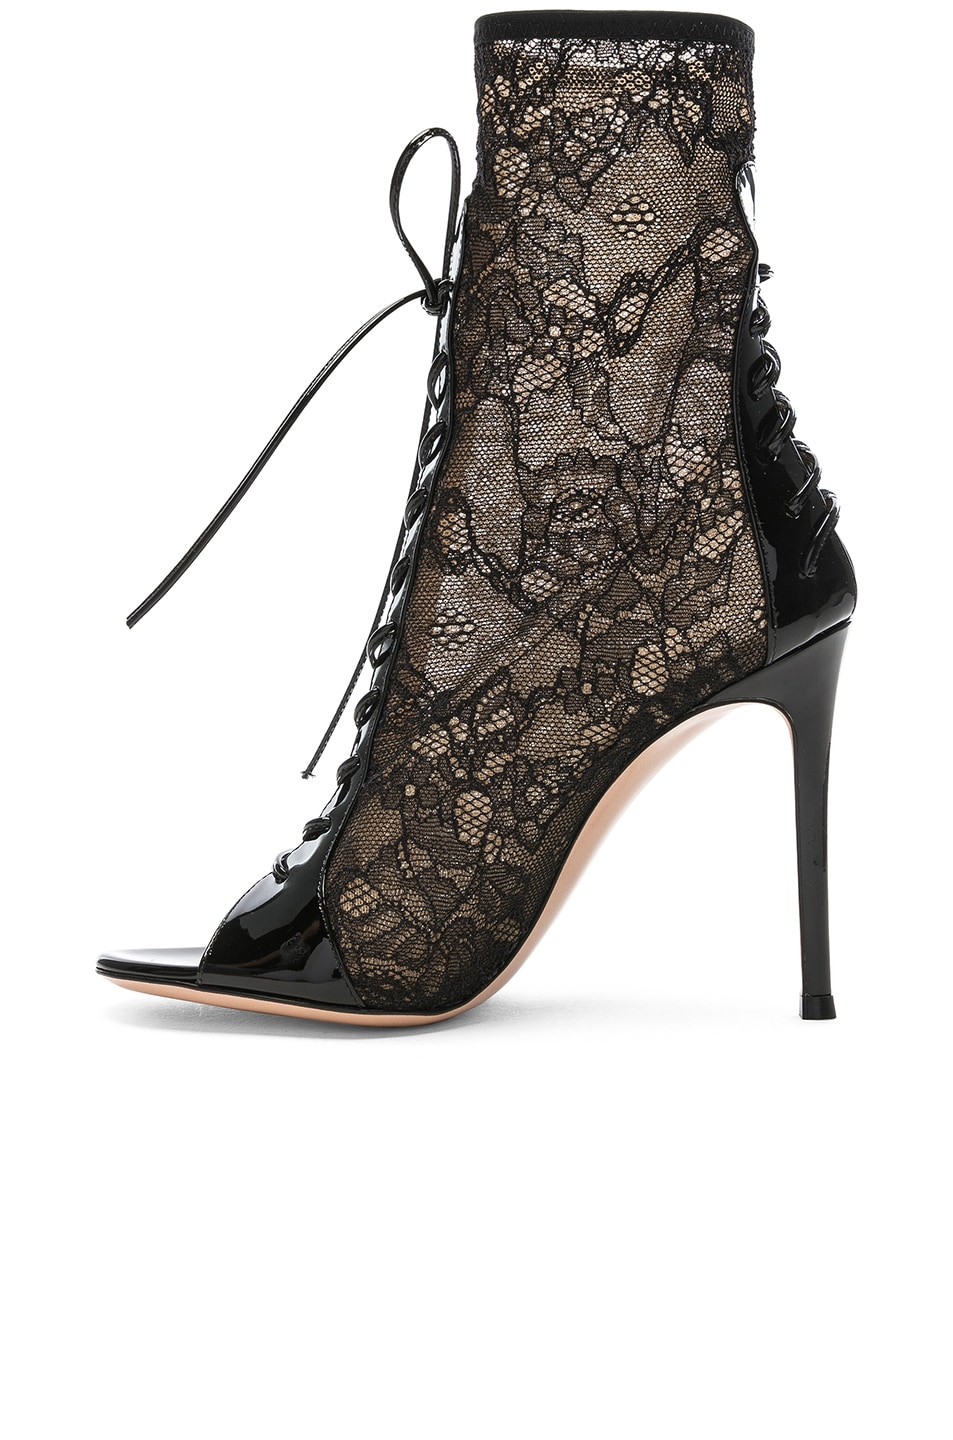 Image 5 of Gianvito Rossi Lurex & Patent Loulou Lace Up Ankle Boots in Black